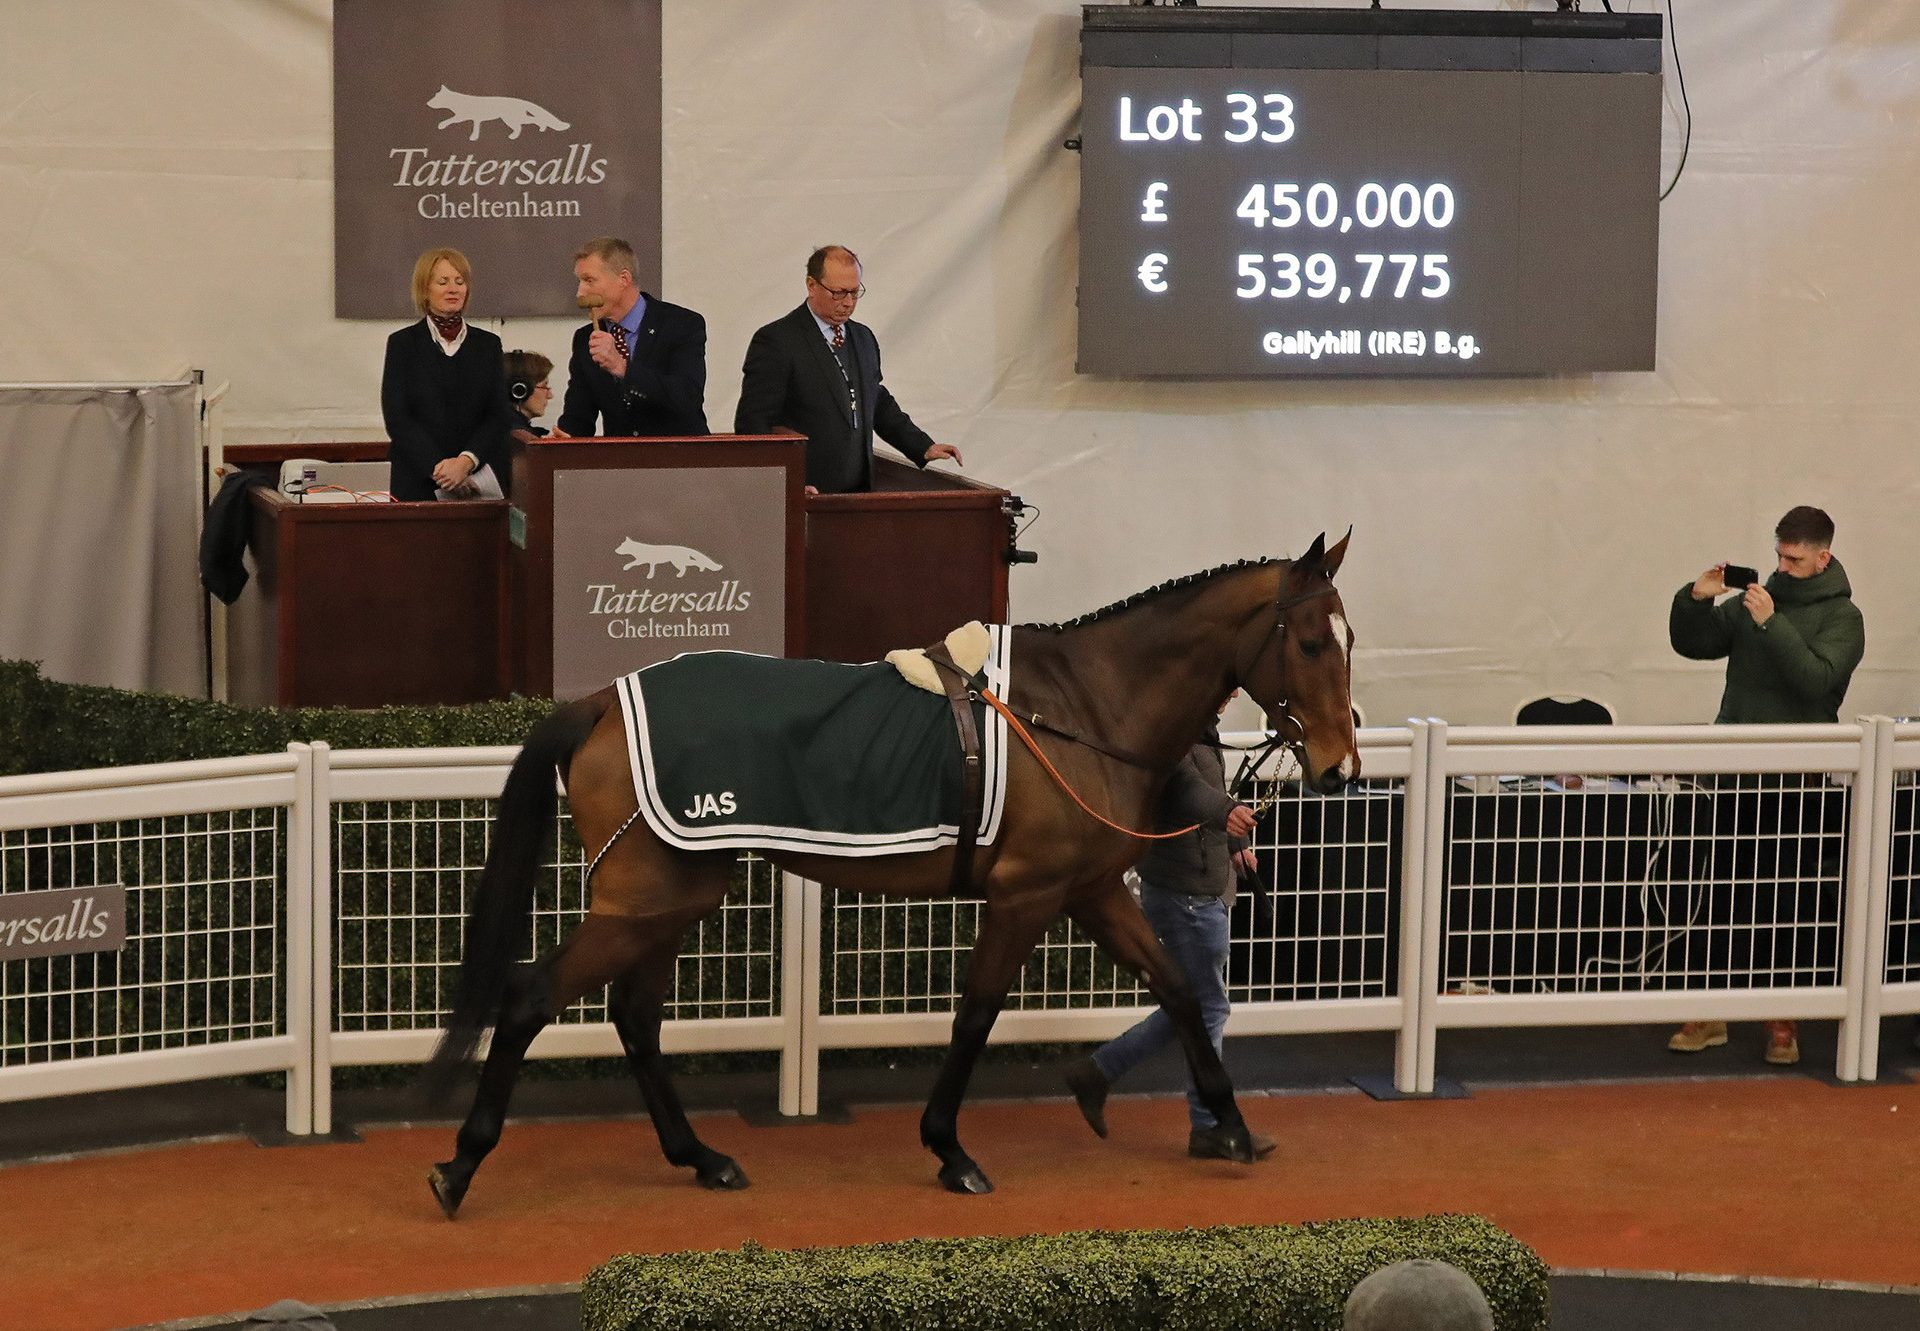 Gallyhill (Getaway) selling for £450,000 at Cheltenham